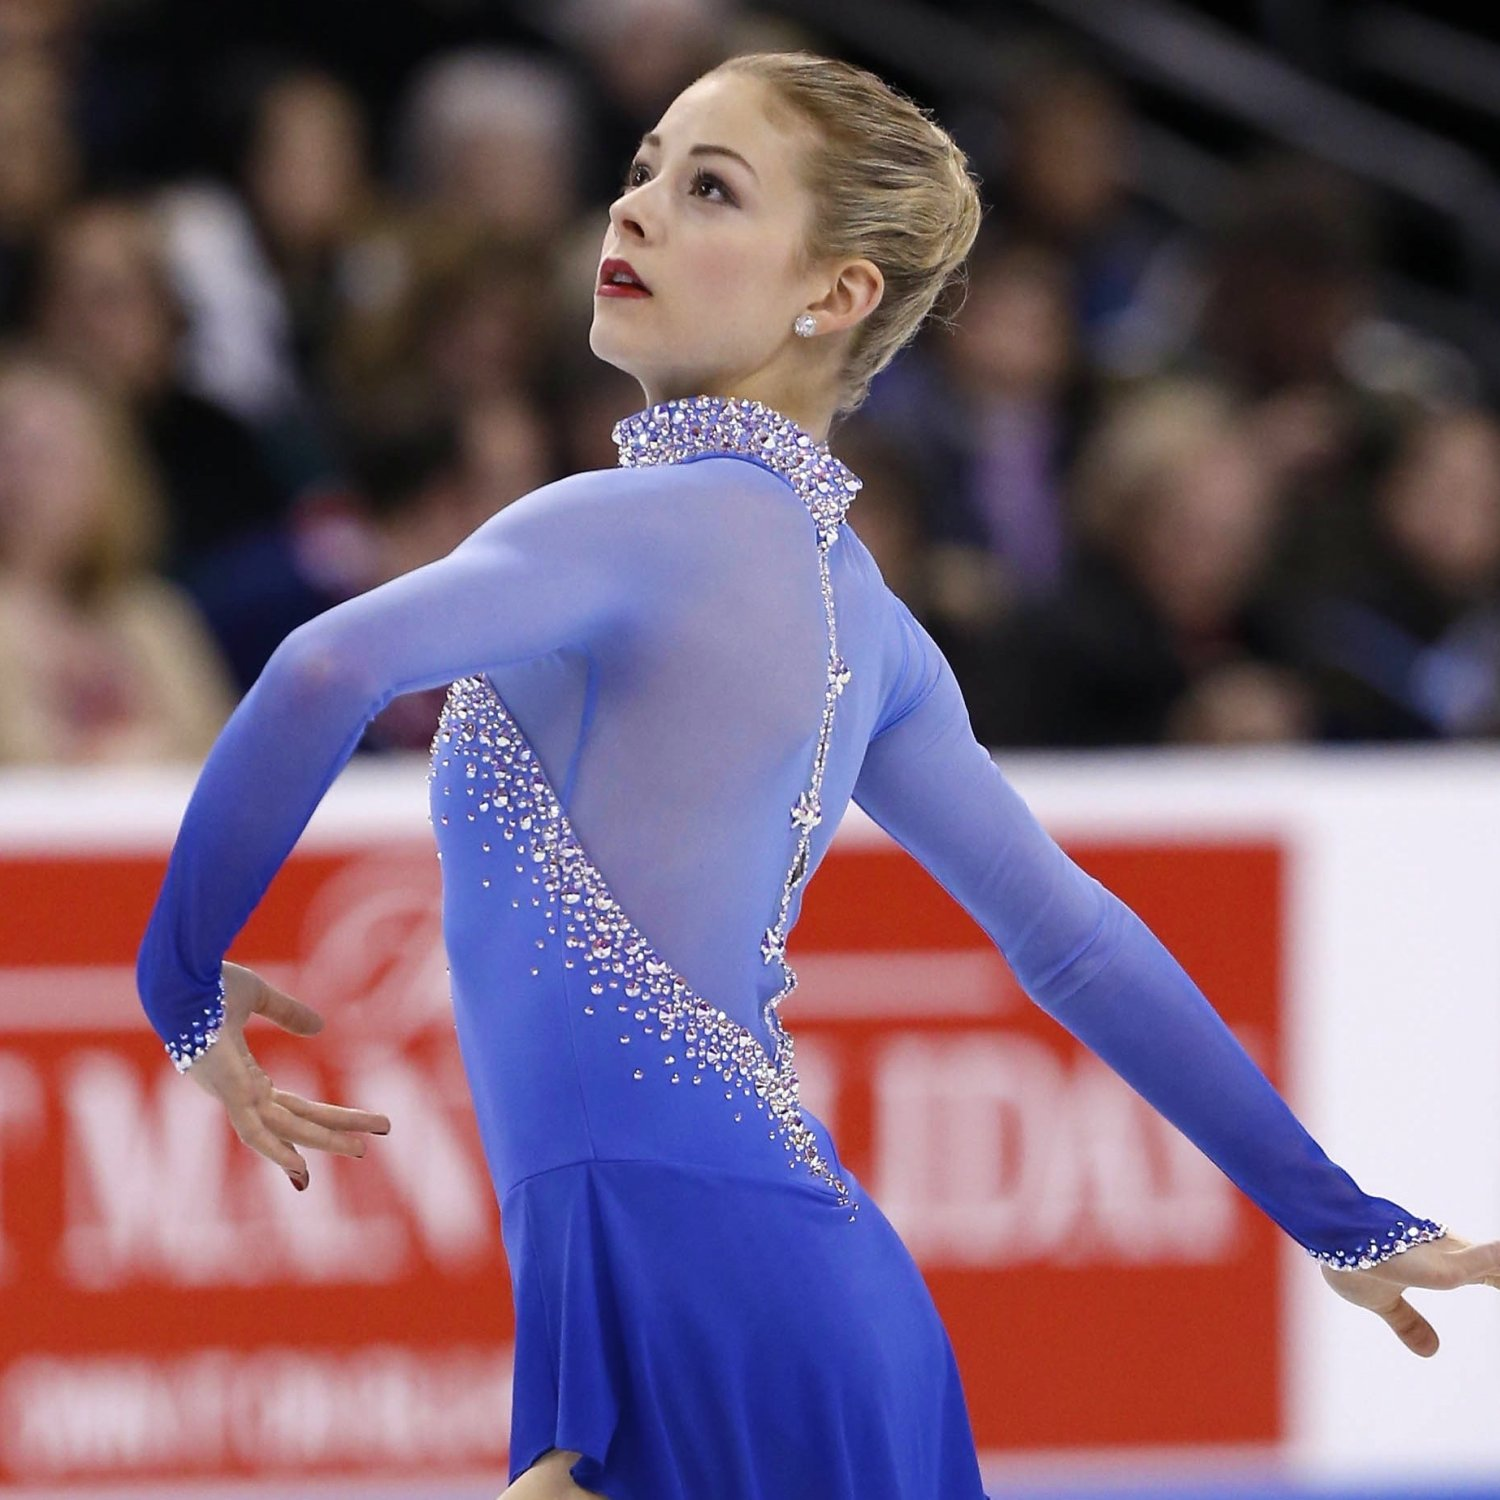 This Olympic Performance Made More Beautiful by Cover Girl